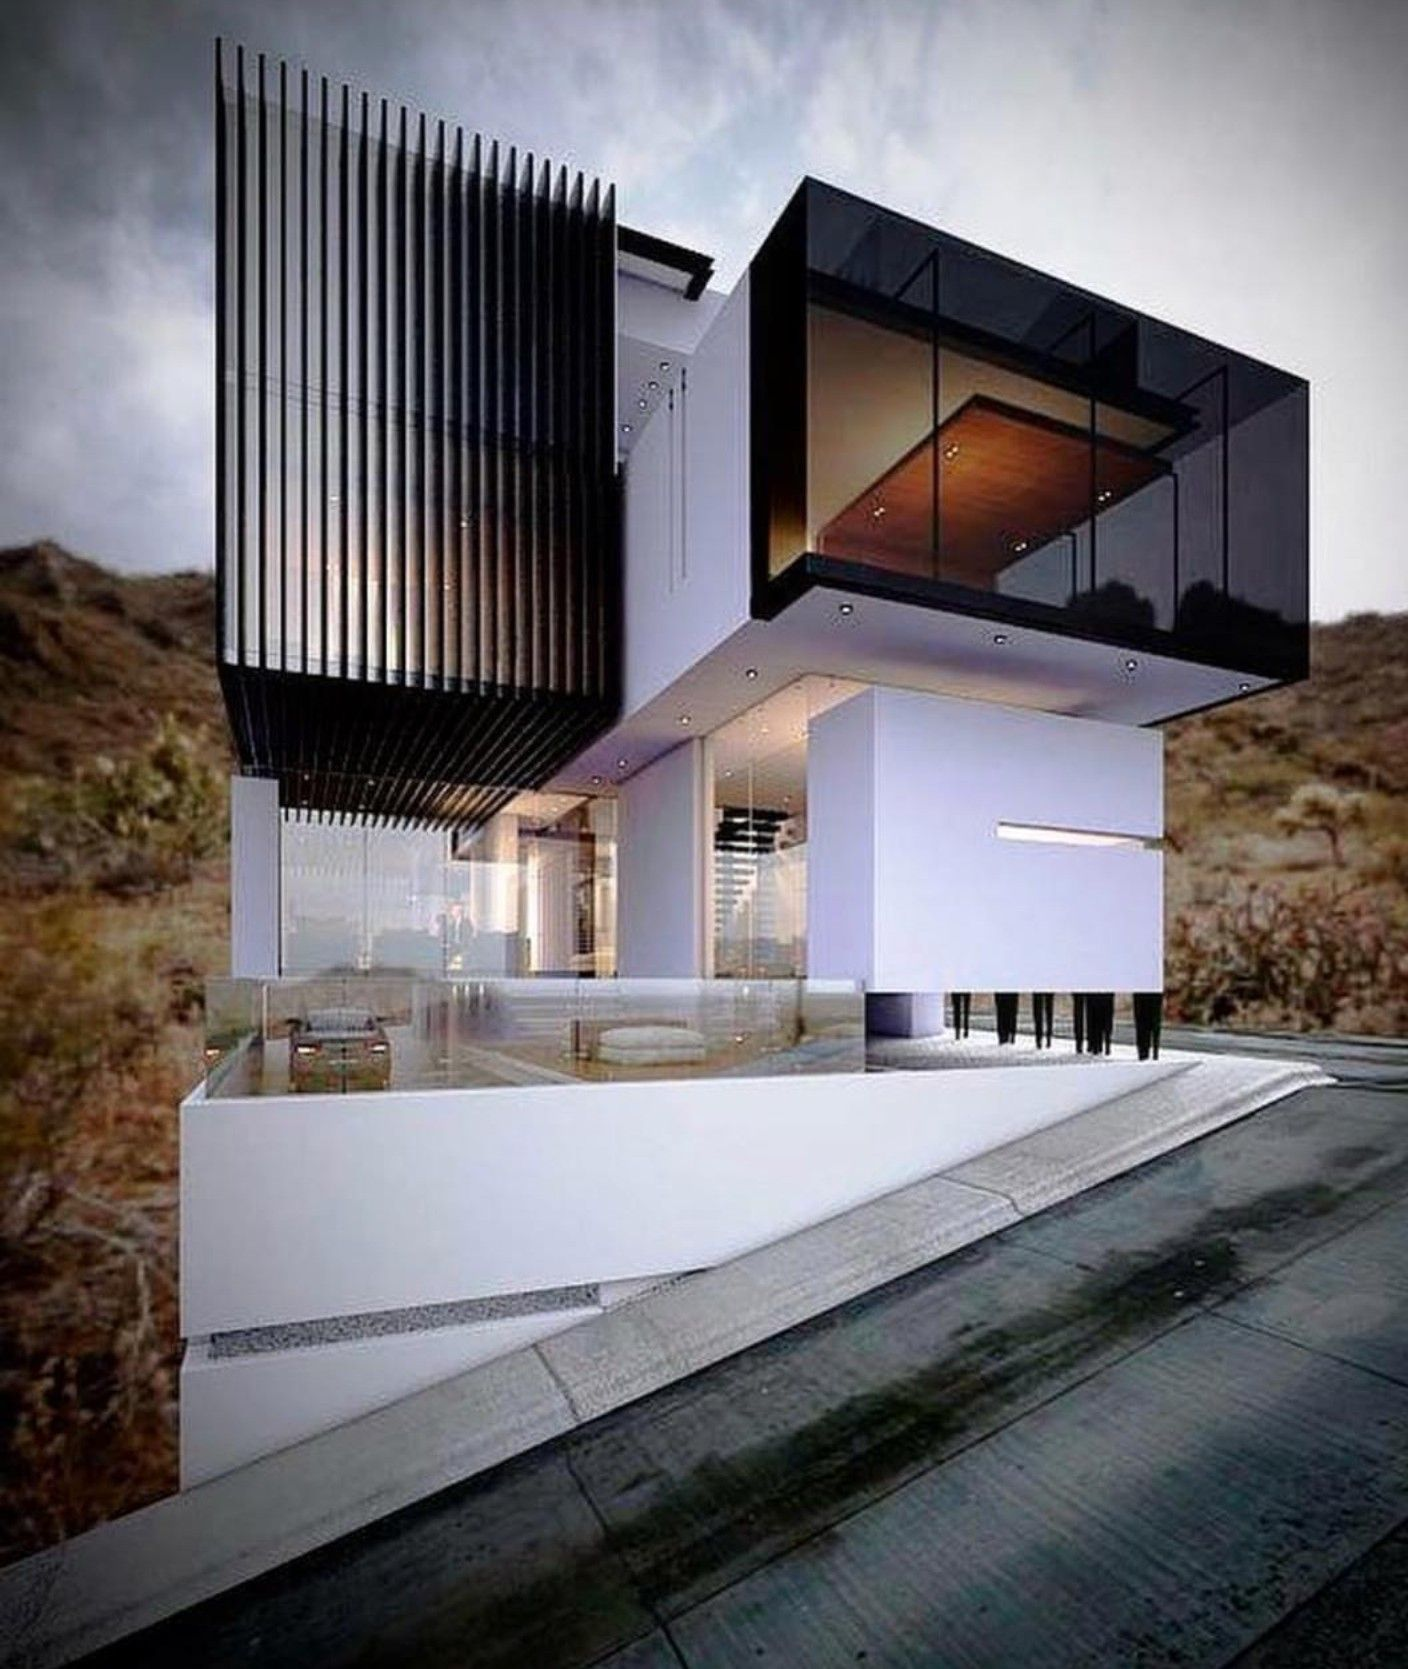 Architecture residential interior modern house concept amazing also pin by debbie chaplin on ultra homes pinterest rh